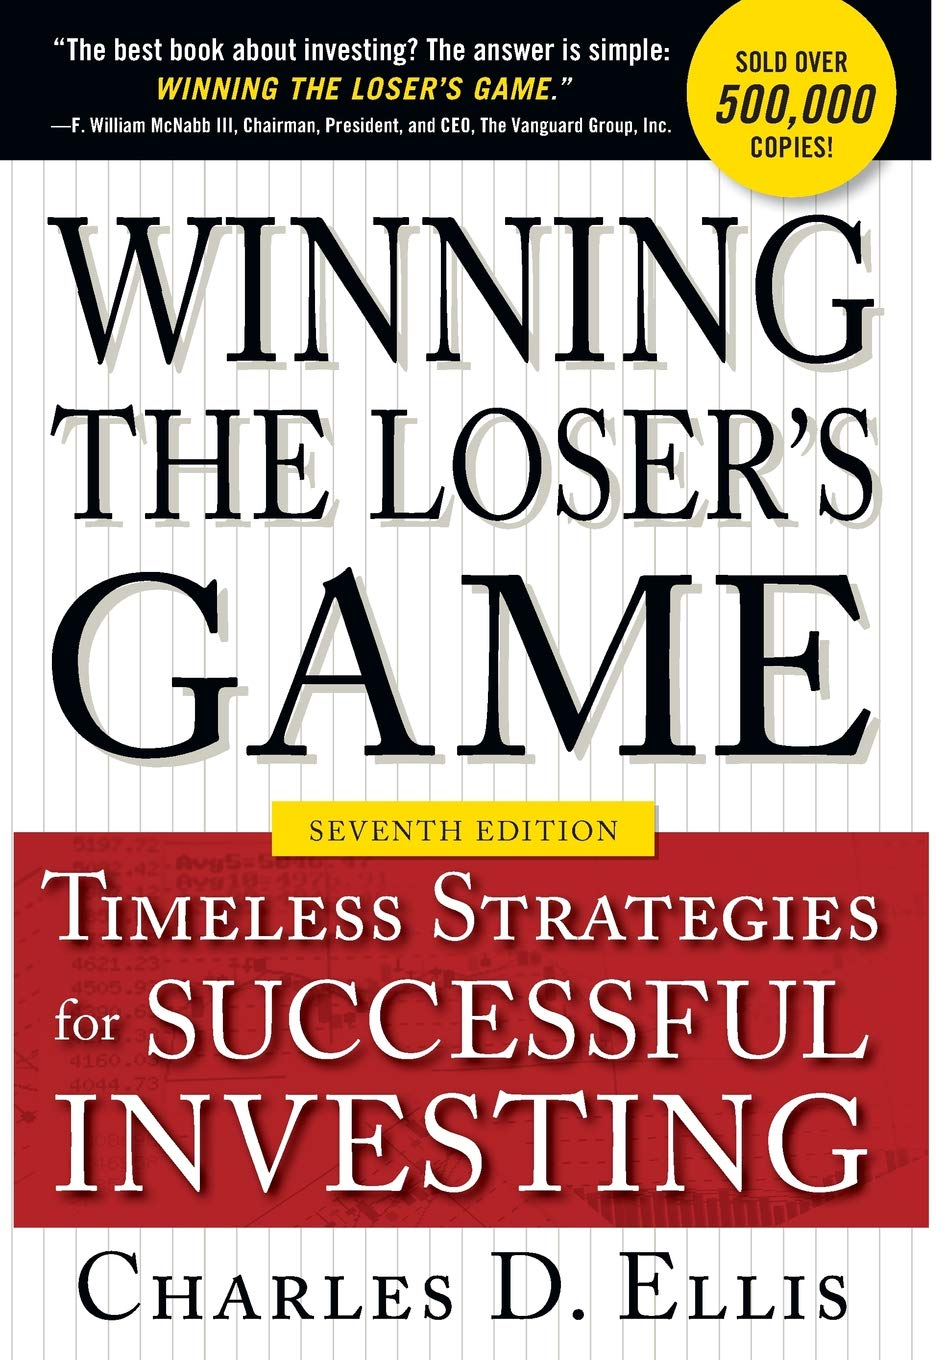 Winning the Loser's Game: Timeless Strategies for Successful Investing - Charles Ellis - quotes, rating, reviews, where to buy